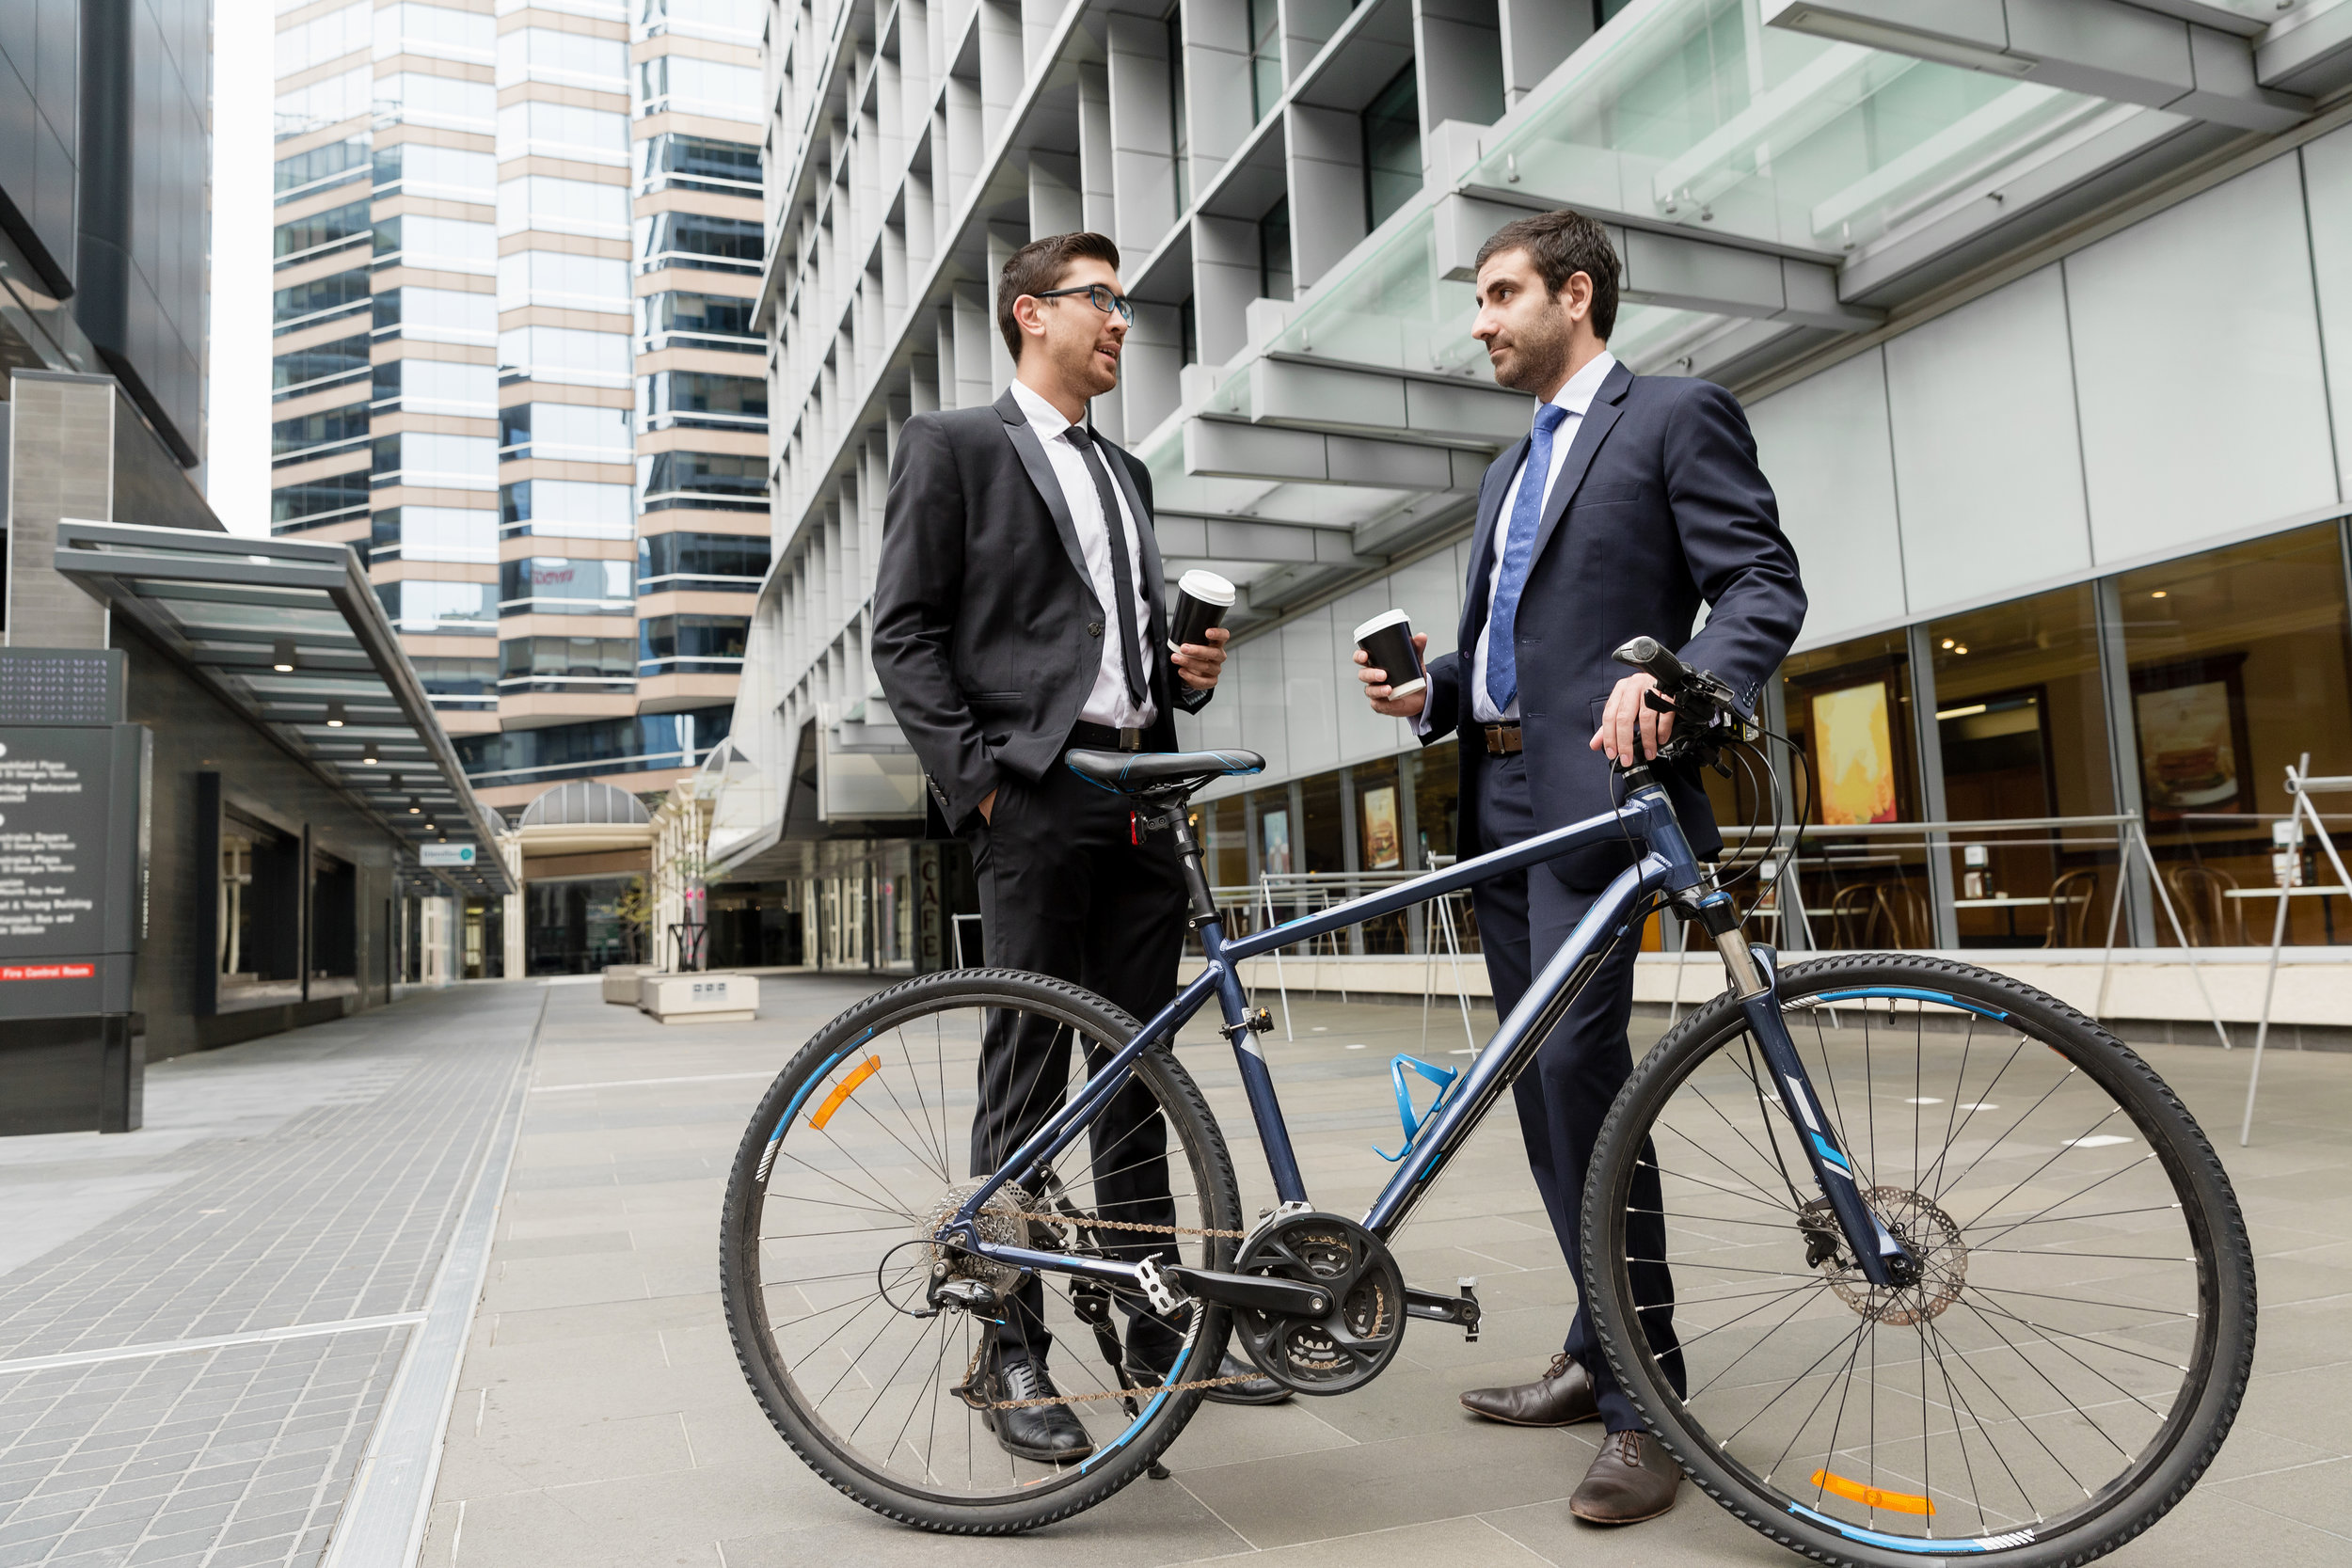 two-young-businessmen-with-a-bike-in-city-centre-P35X39T.jpg